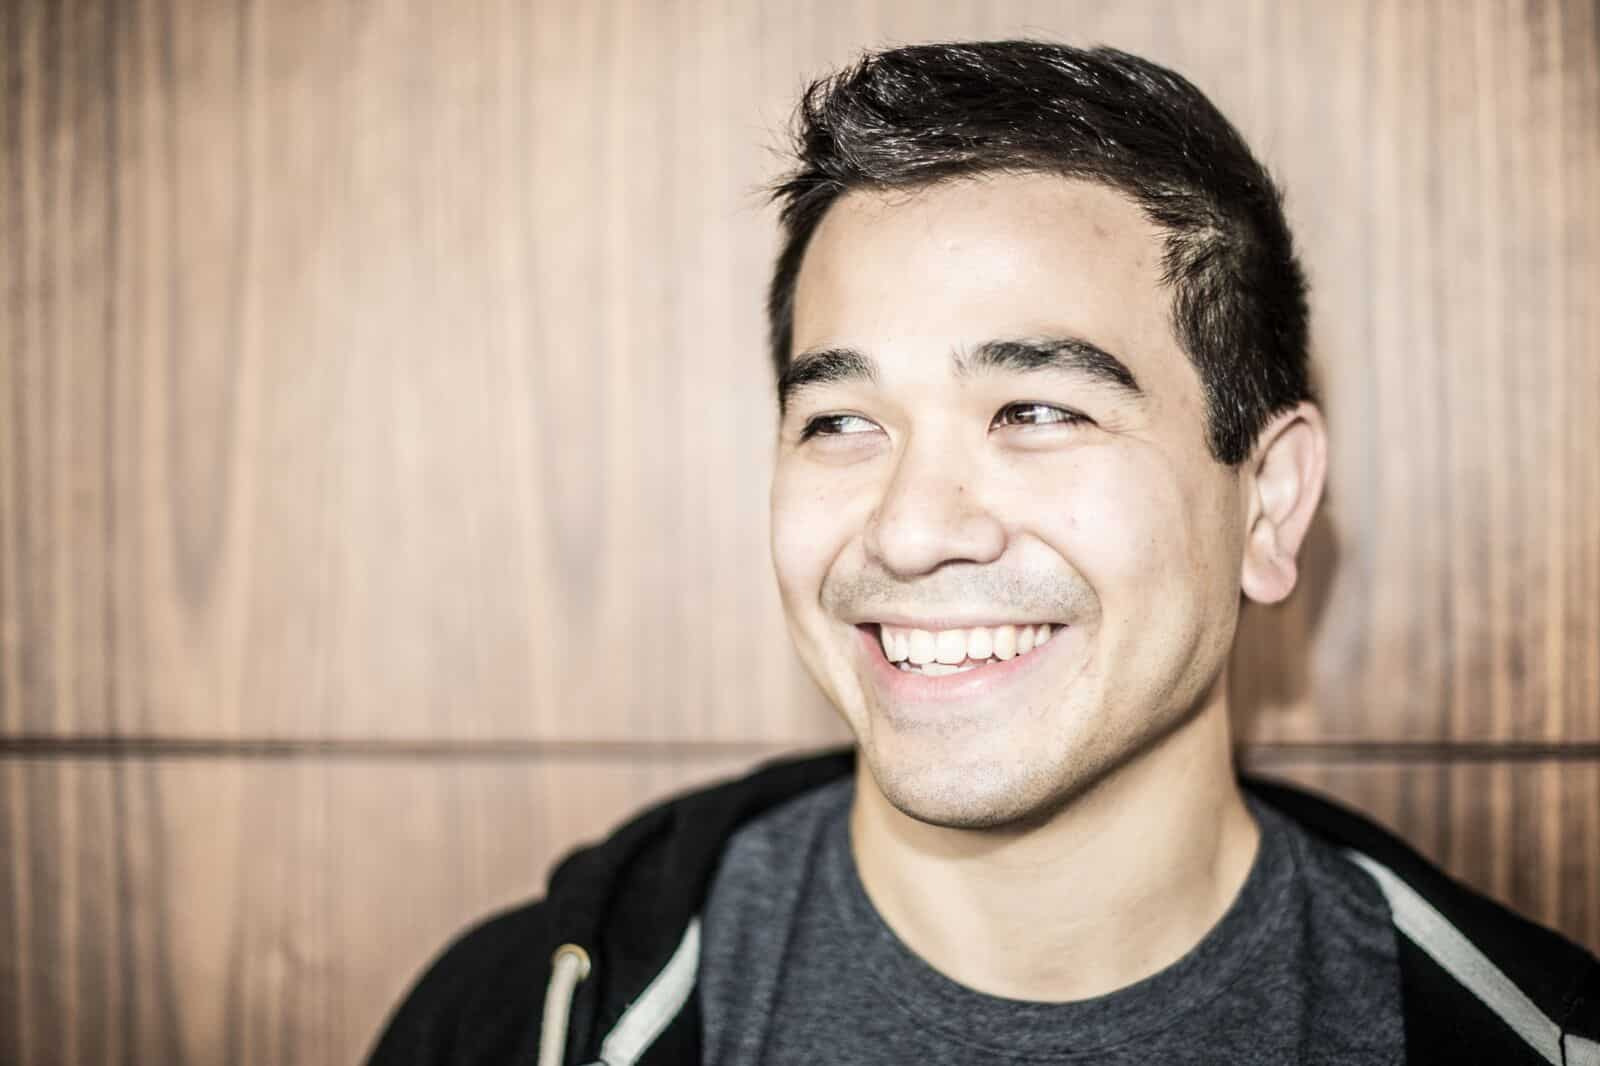 Fintech startup Vise brings on Andrew Fong (formerly Dropbox) as CTO